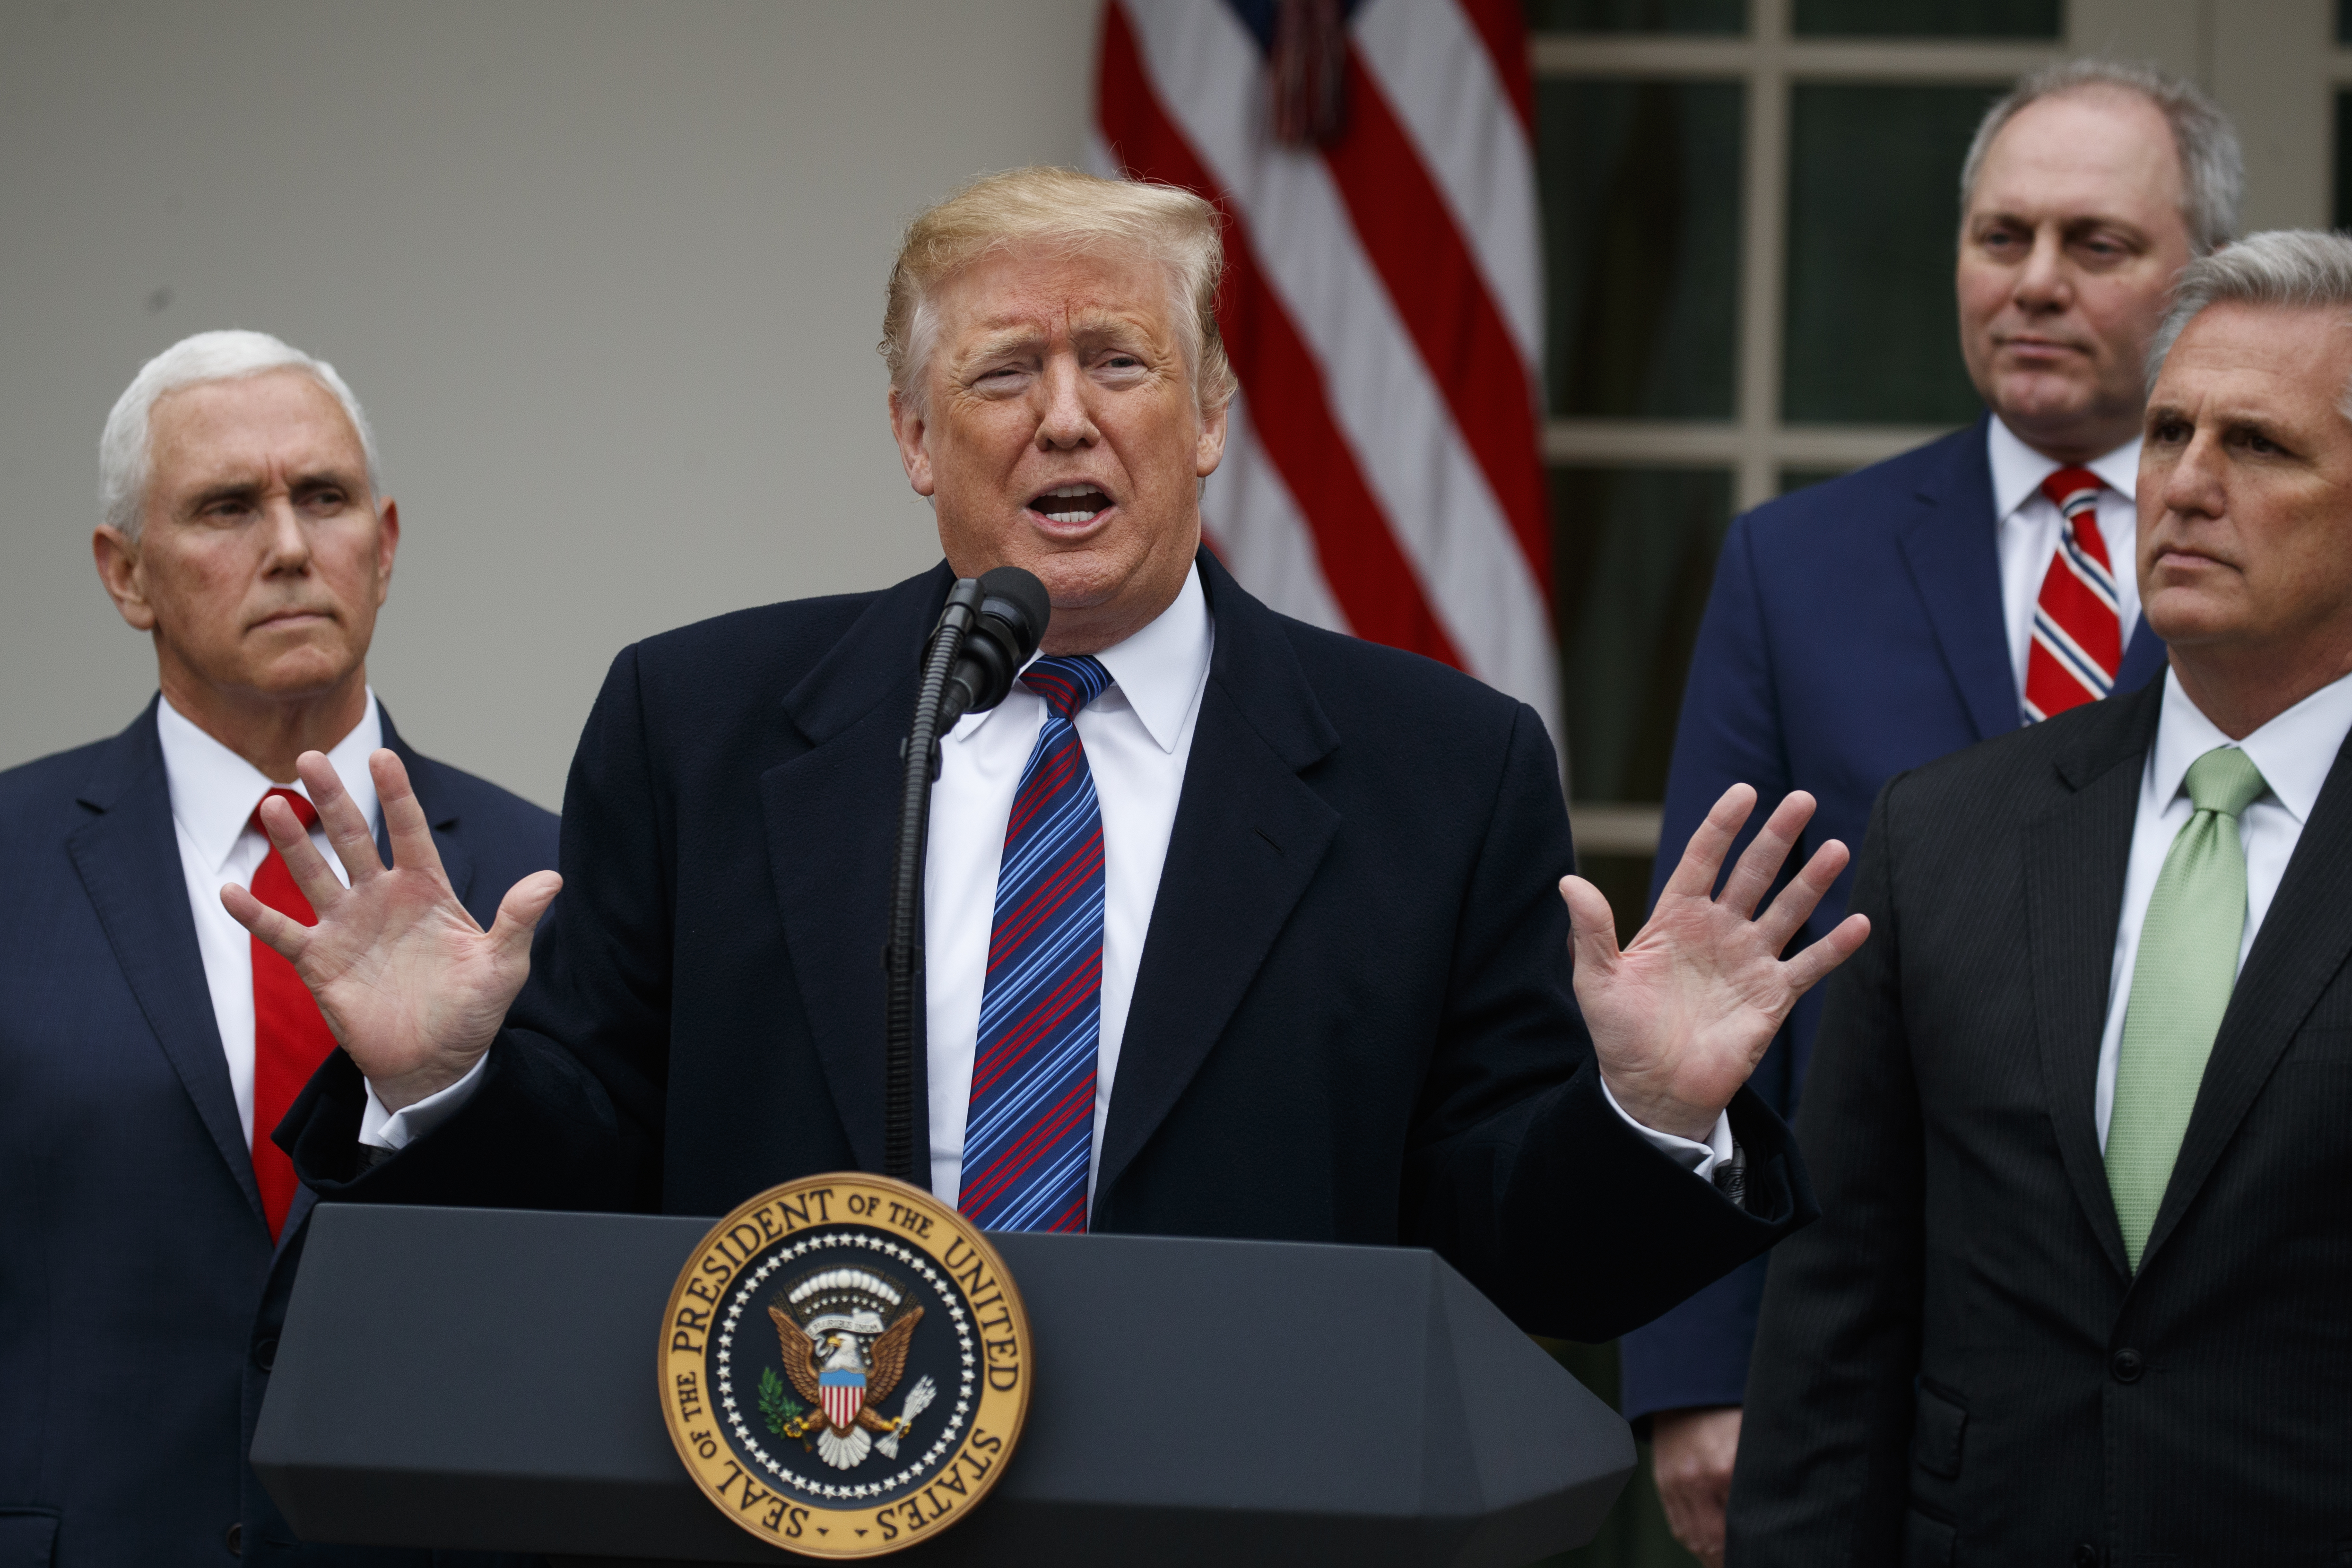 President Donald Trump speaks during a news conference in the Rose Garden of the White House after meeting with lawmakers about border security, Jan. 4, 2019.